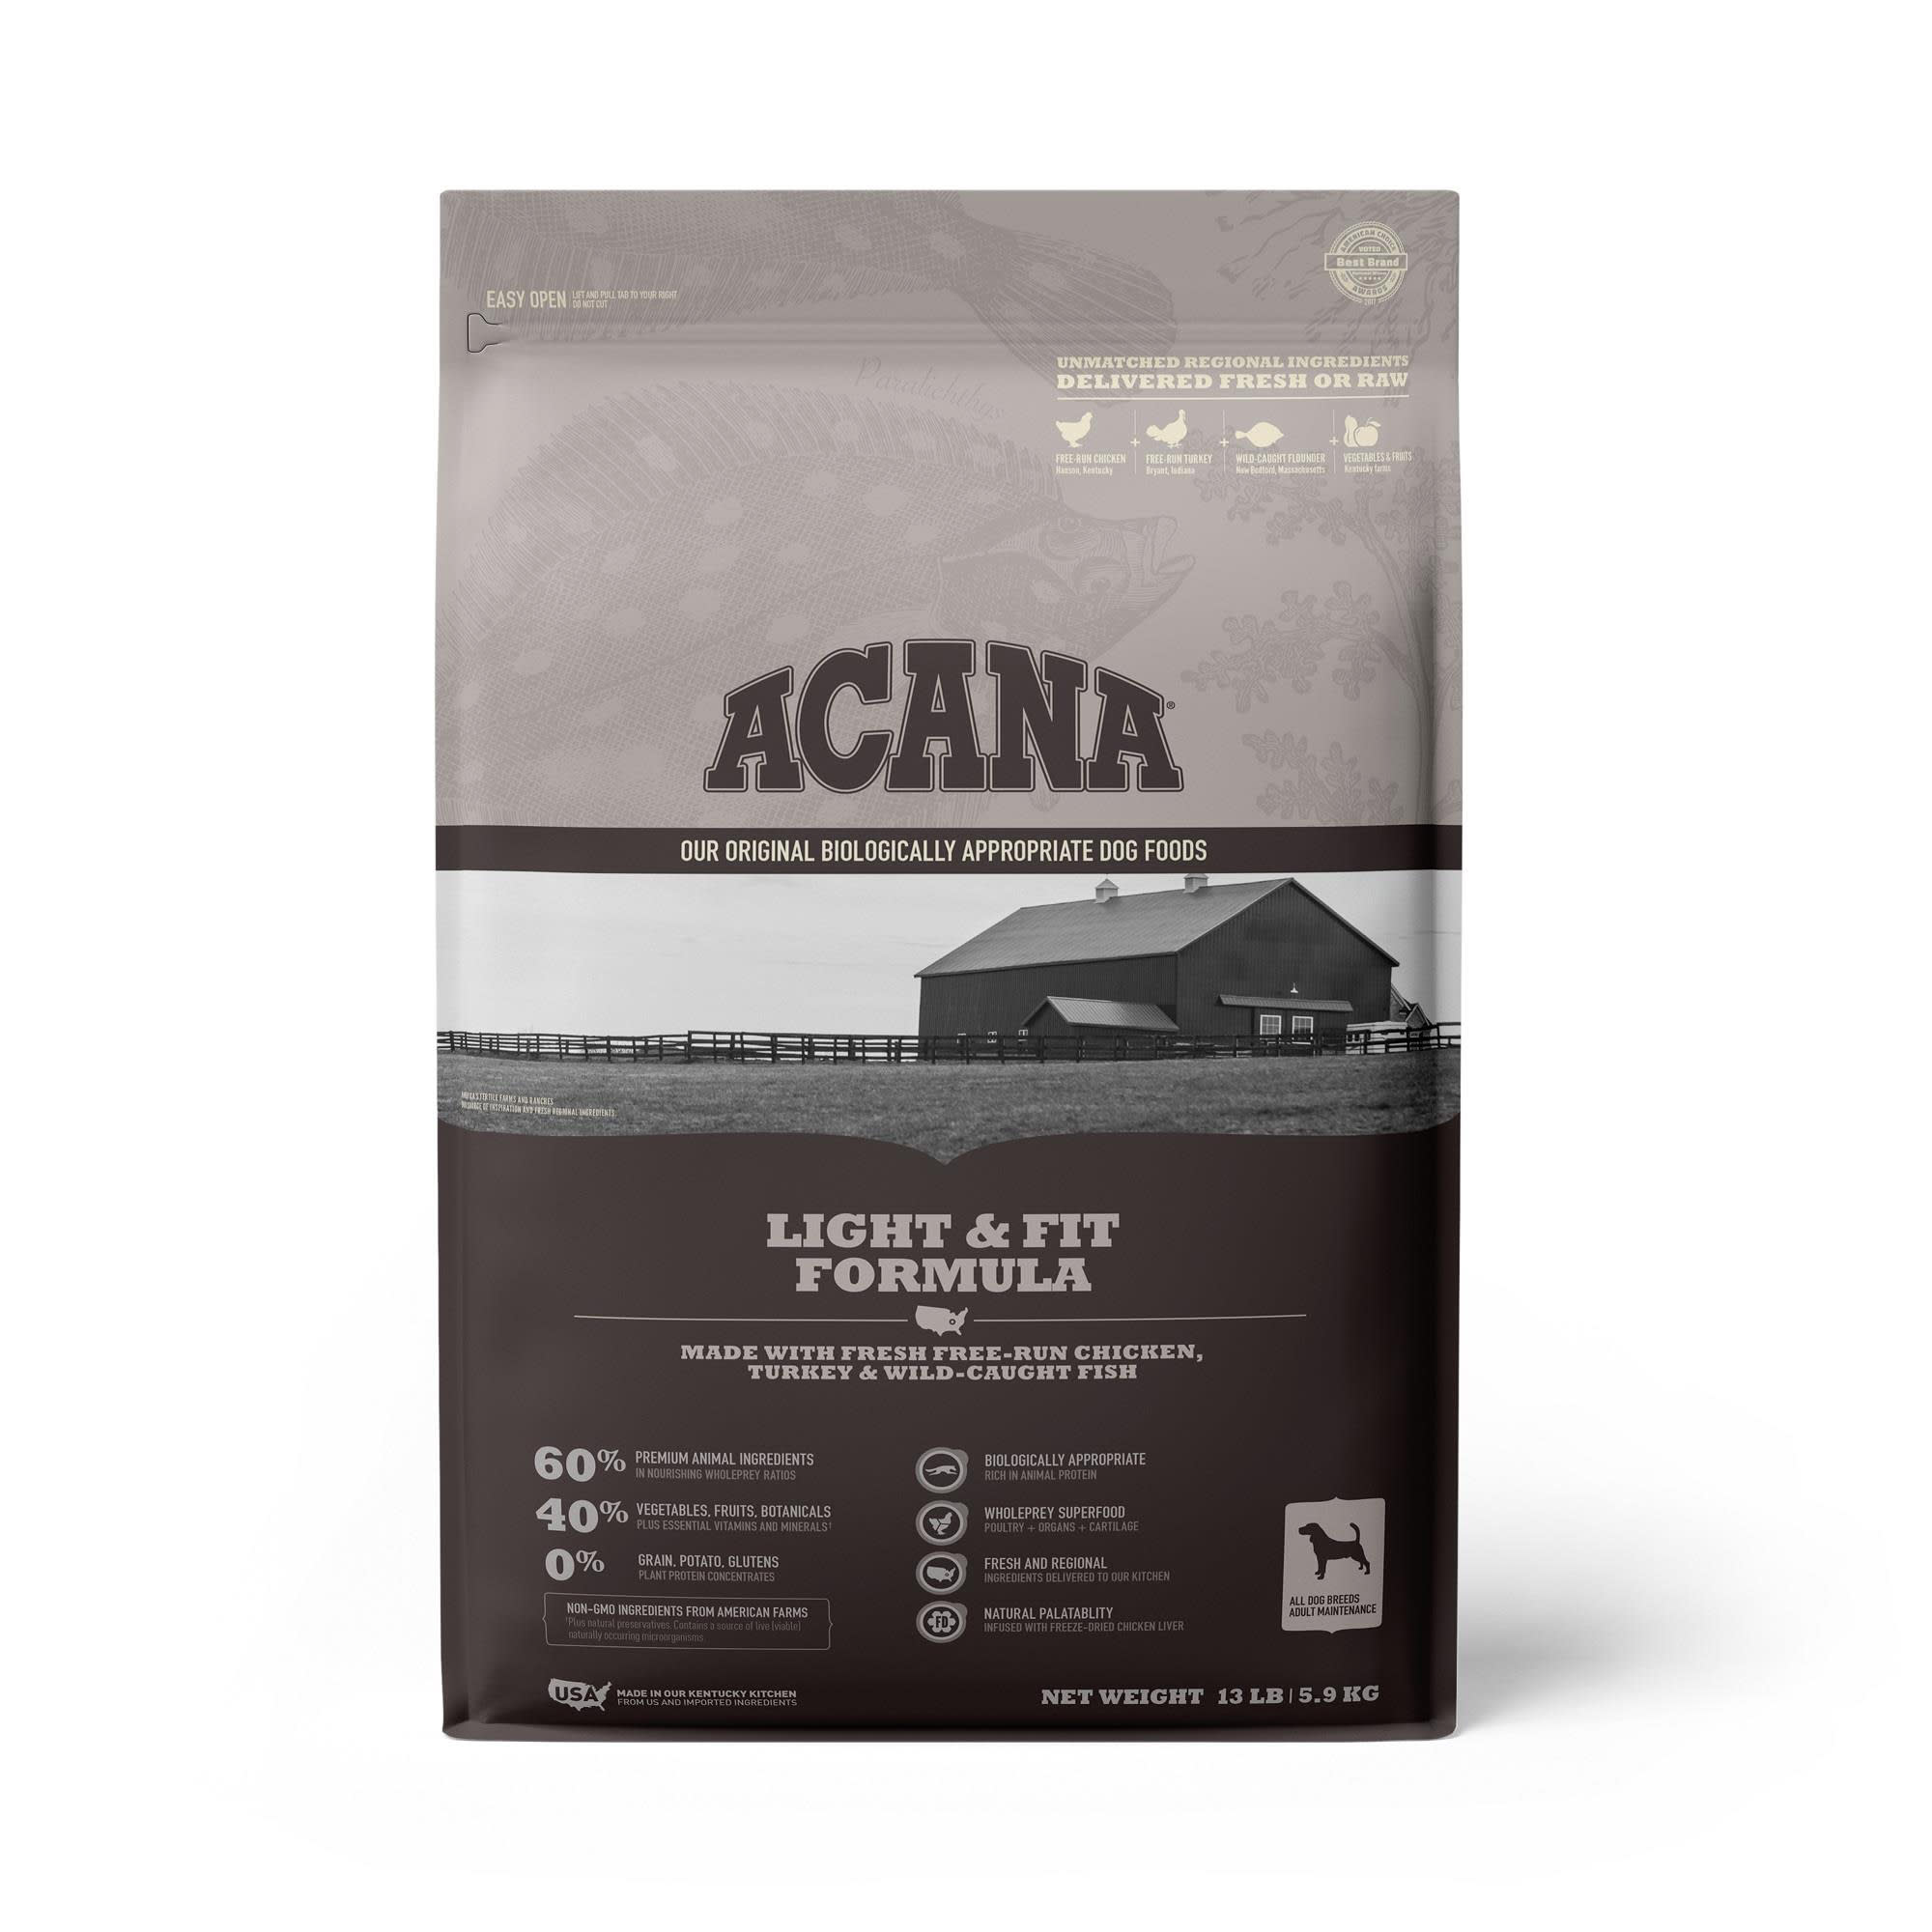 ACANA Grain-Free Light & Fit to support Healthy Weight Adult Dry Dog Food, 13 lbs.